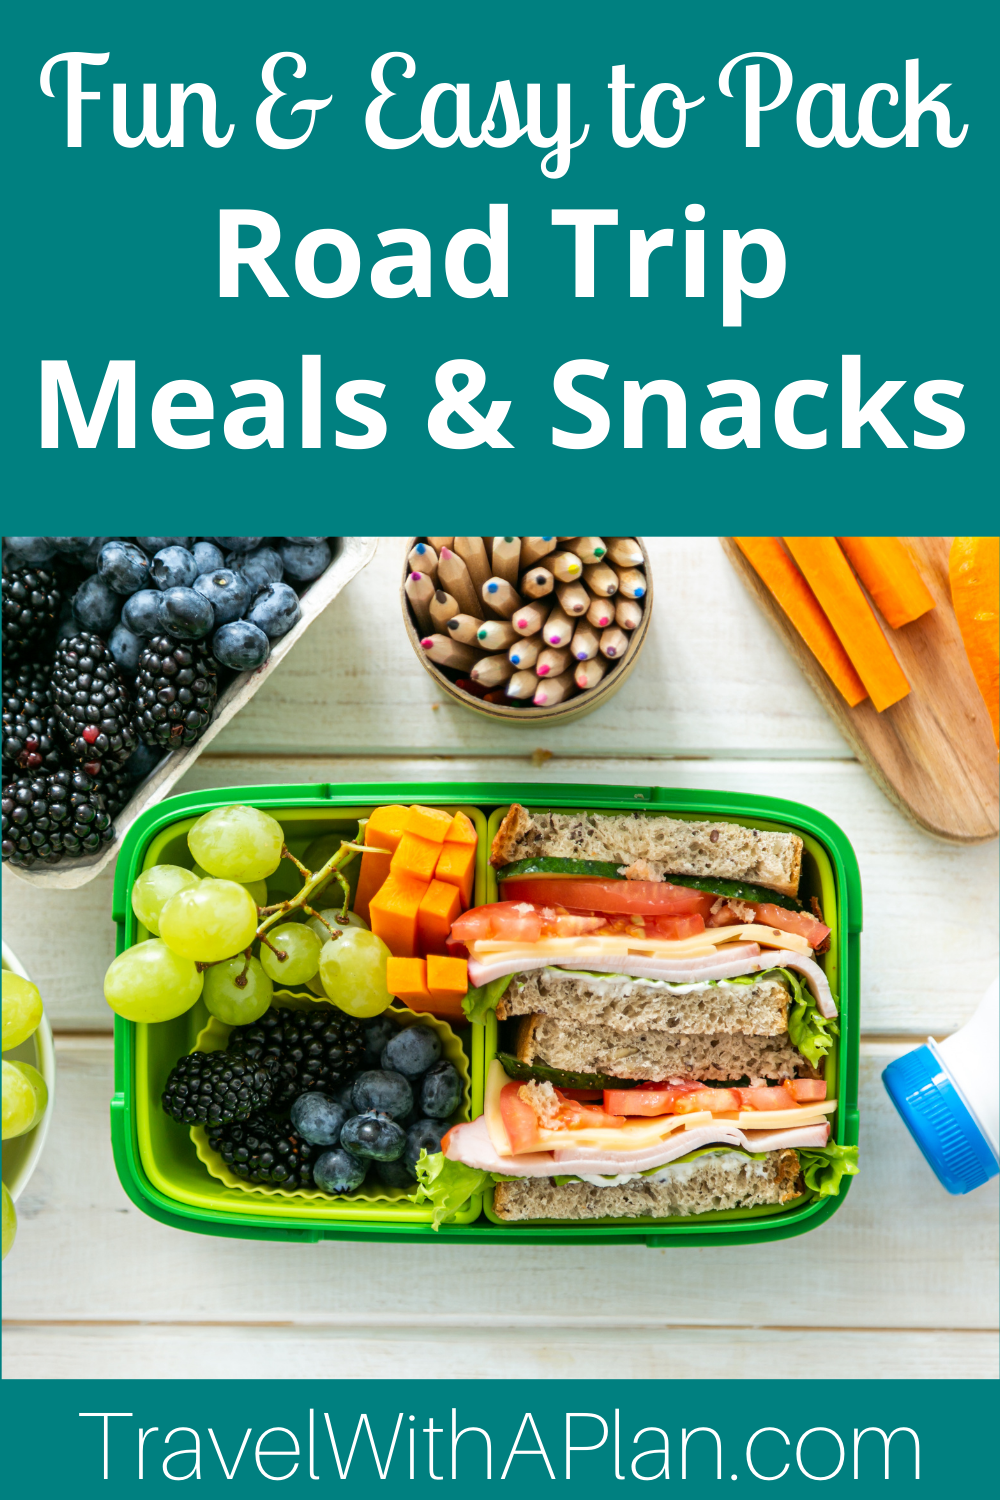 Click here for an epic road trip food list that is perfect for families on-the-go from Top US Family Travel Blog, Travel With A Plan.